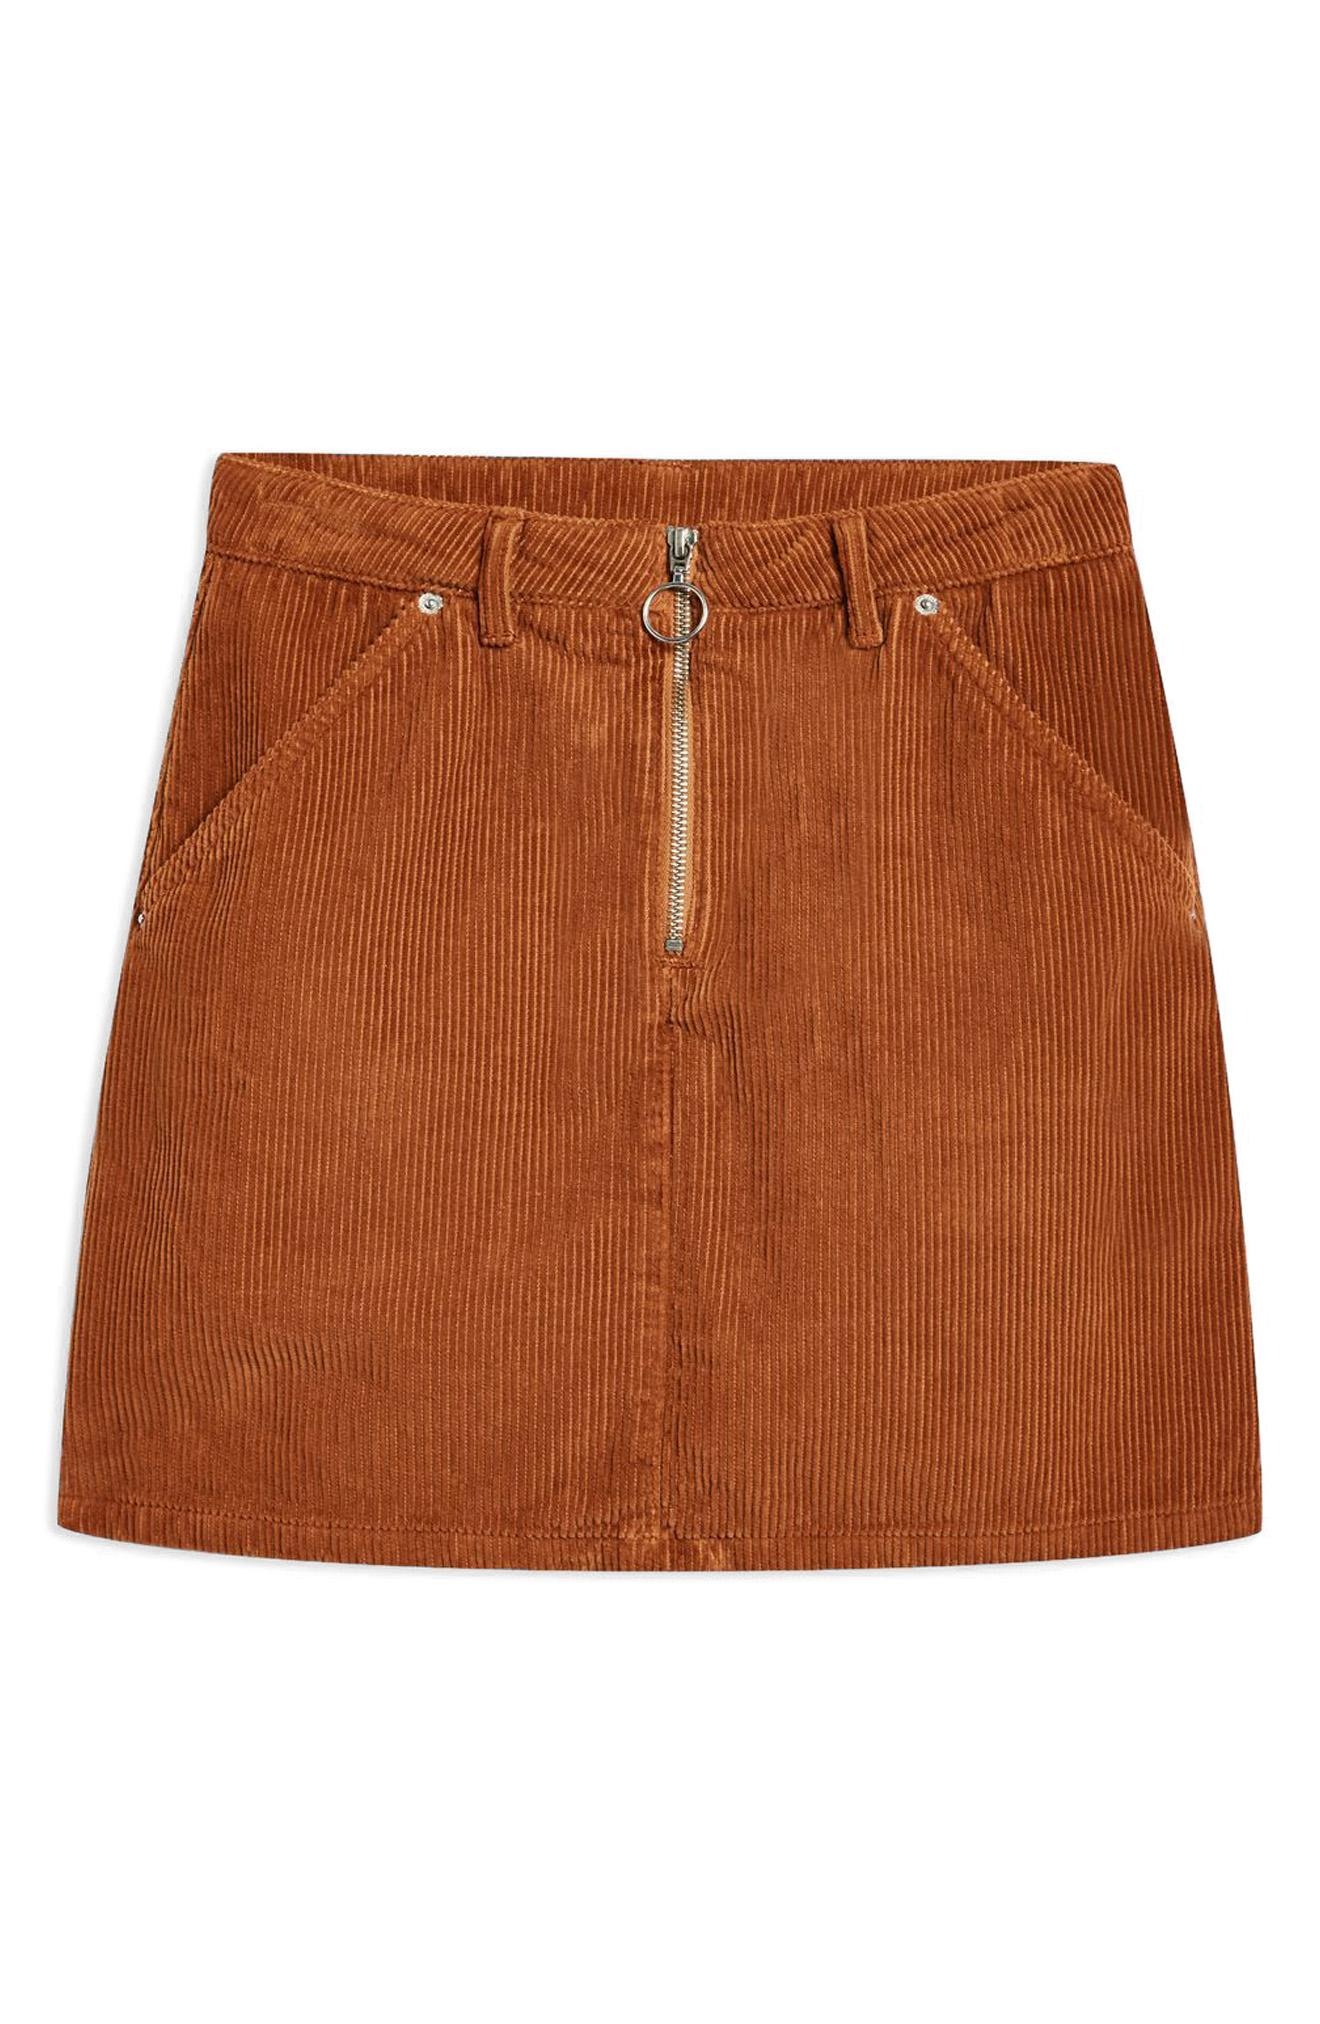 Topshop Corduroy Skirt -- Sale: $39.90 / After sale: $60{ }(Image: Courtesy Nordstrom)